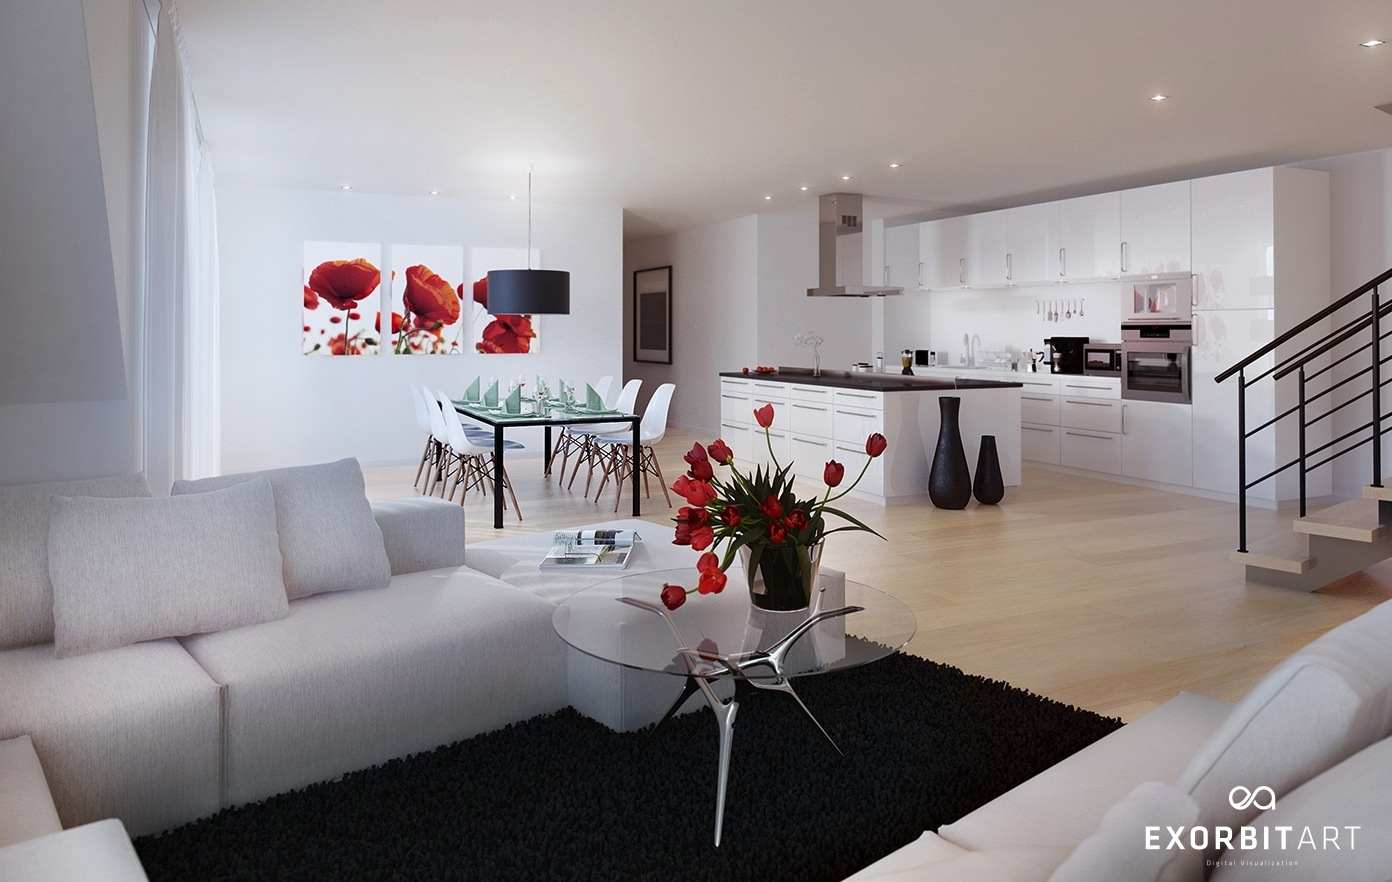 10 Cute Red Black And White Room Ideas %name 2020